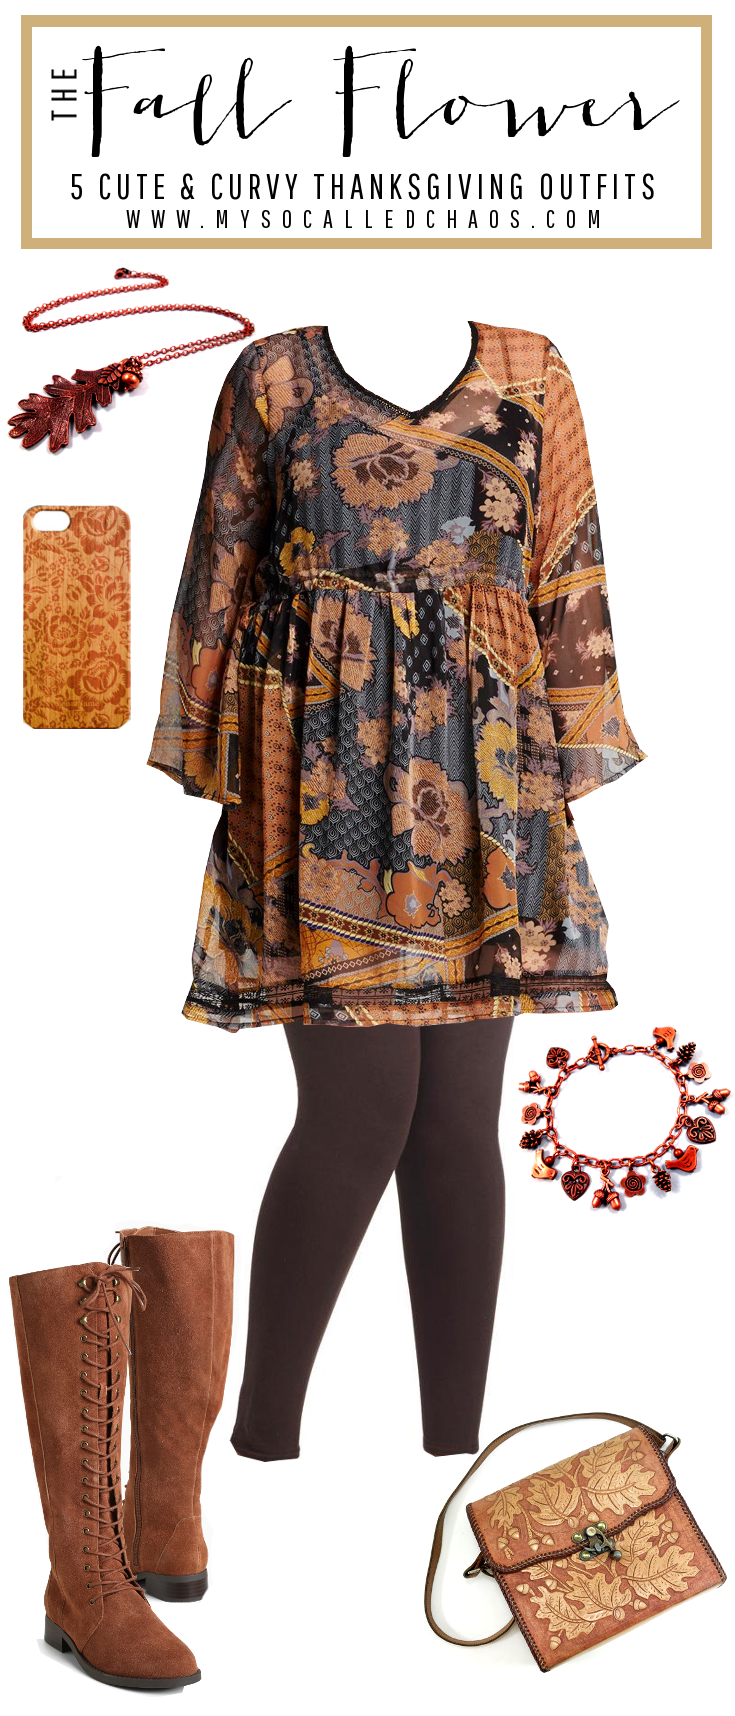 Thanksgiving Outfits 5 Cute Amp Curvy Outfits To Wear To Dinner